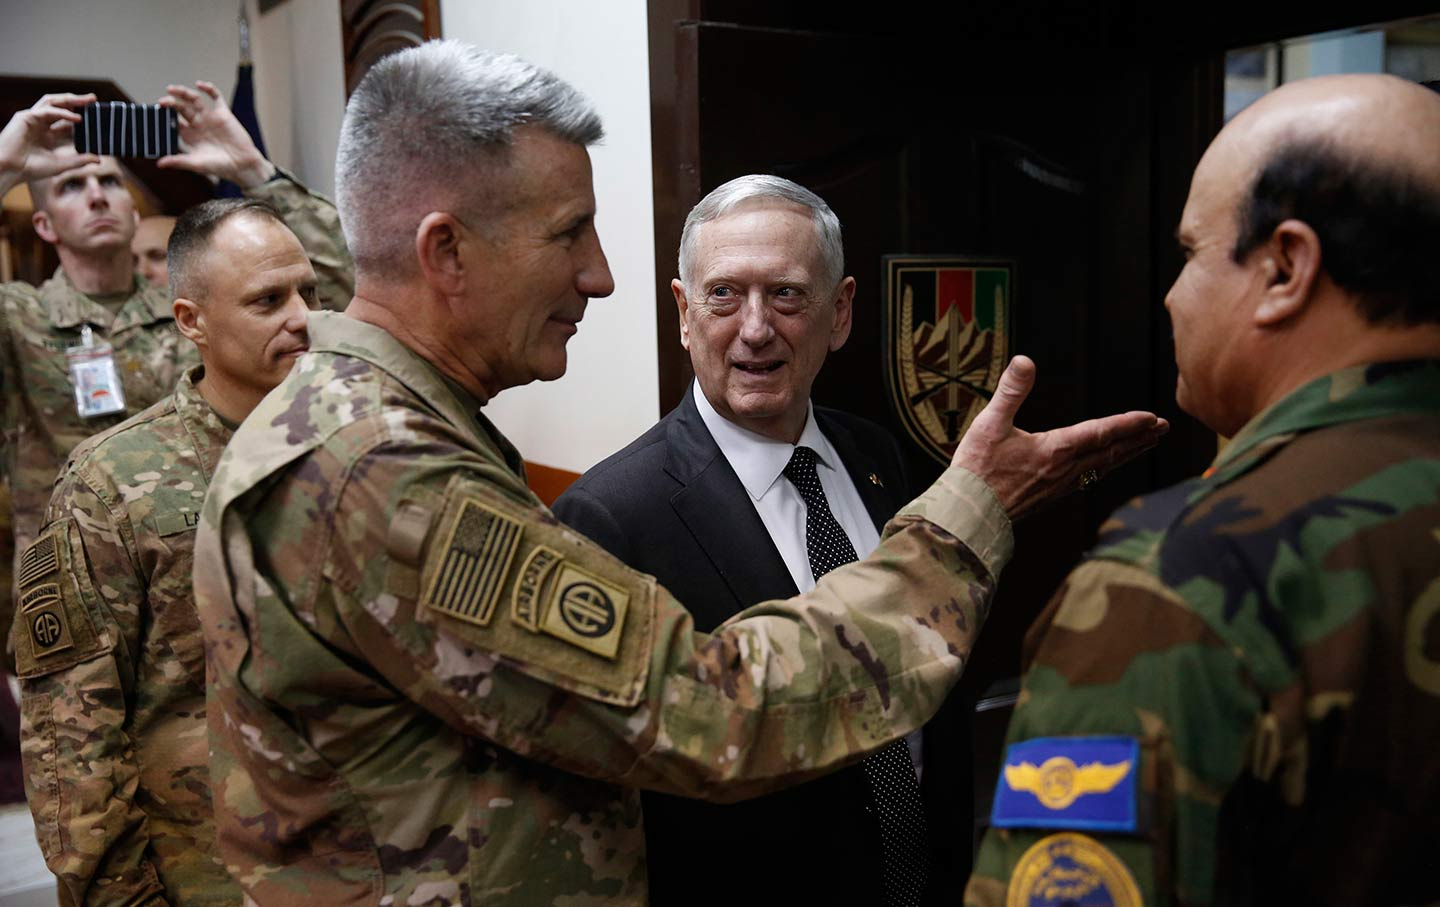 https://www.thenation.com/wp-content/uploads/2017/05/afghanistan-mattis-nicholson-ap-img.jpg?scale=896&compress=80